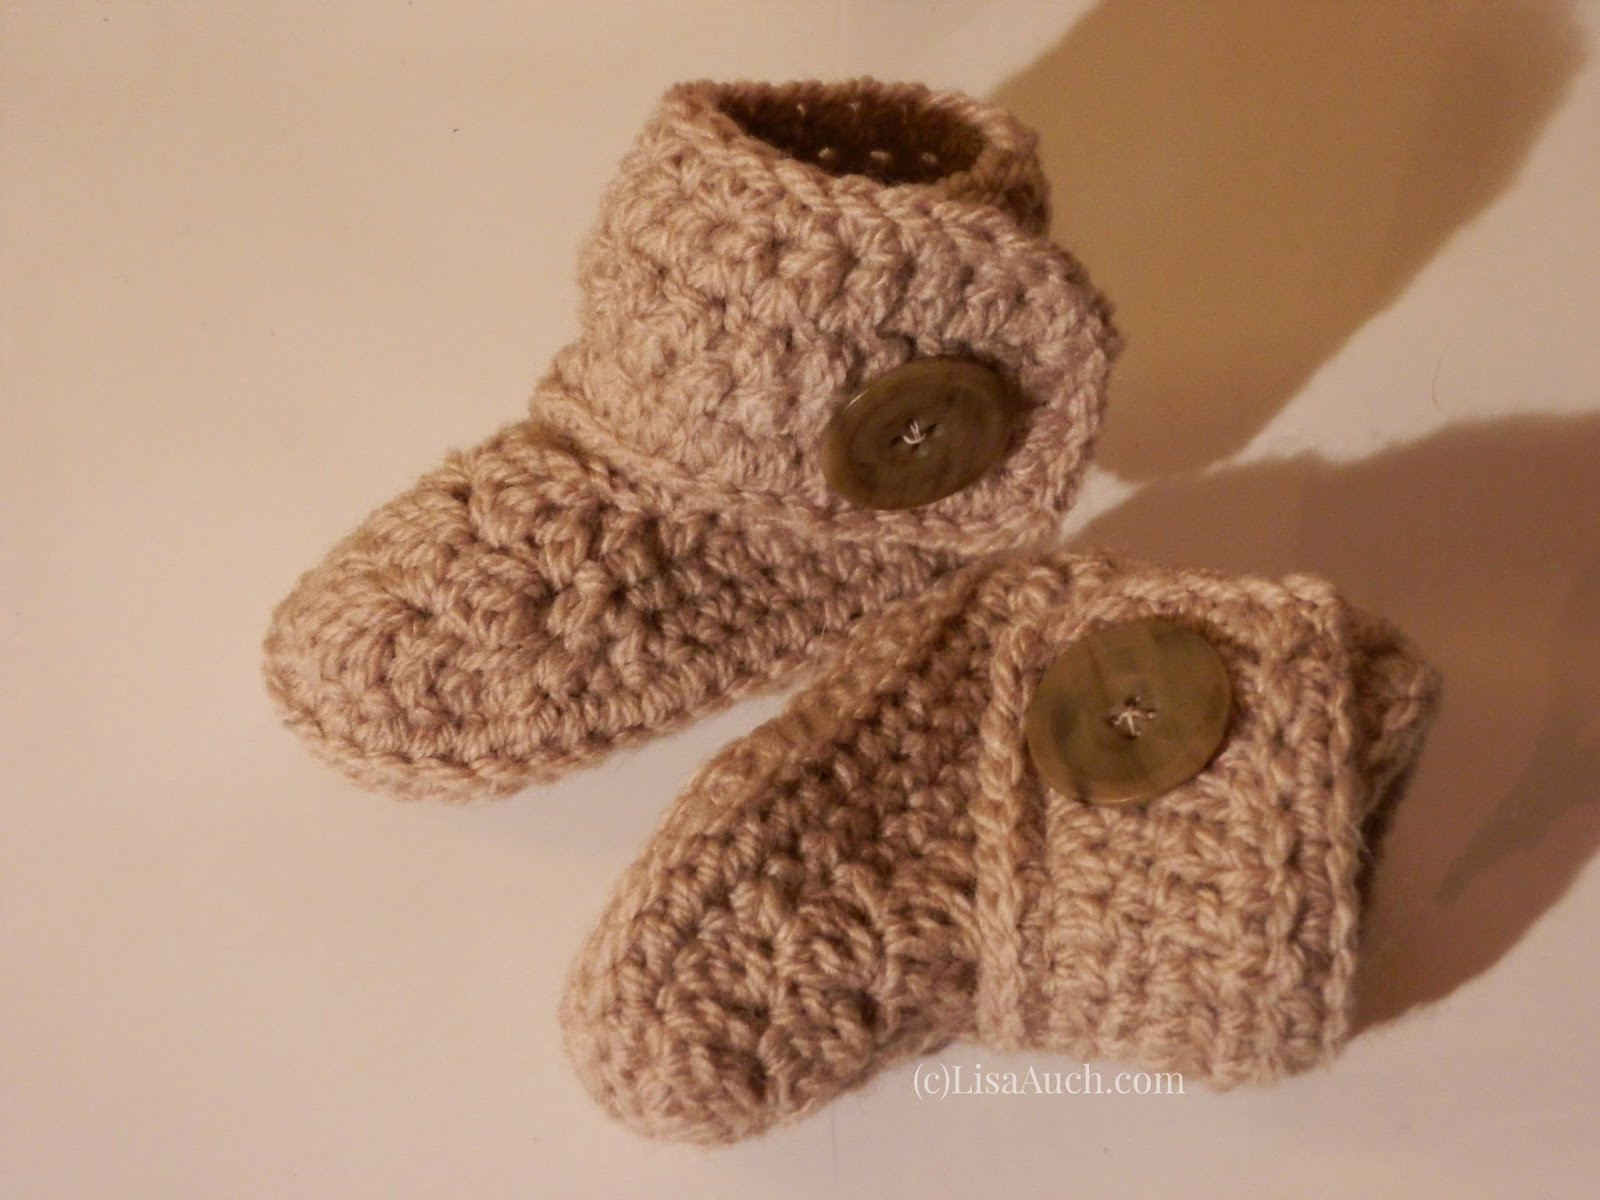 Newborn Crochet Patterns New Free Crochet Patterns Baby Booties Of Incredible 41 Ideas Newborn Crochet Patterns